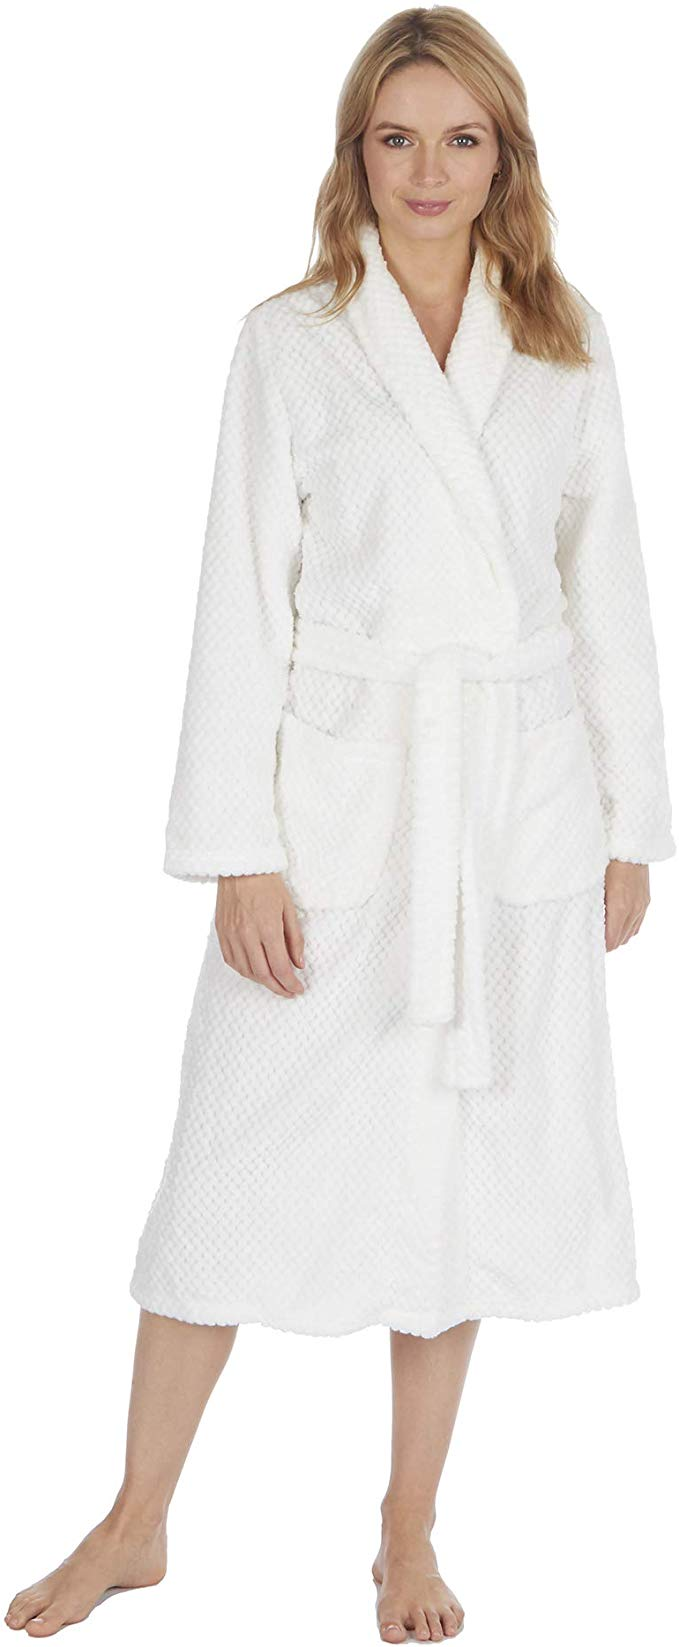 Ladies Womens Baby Pink Soft Fleece Dressing Gown Robe